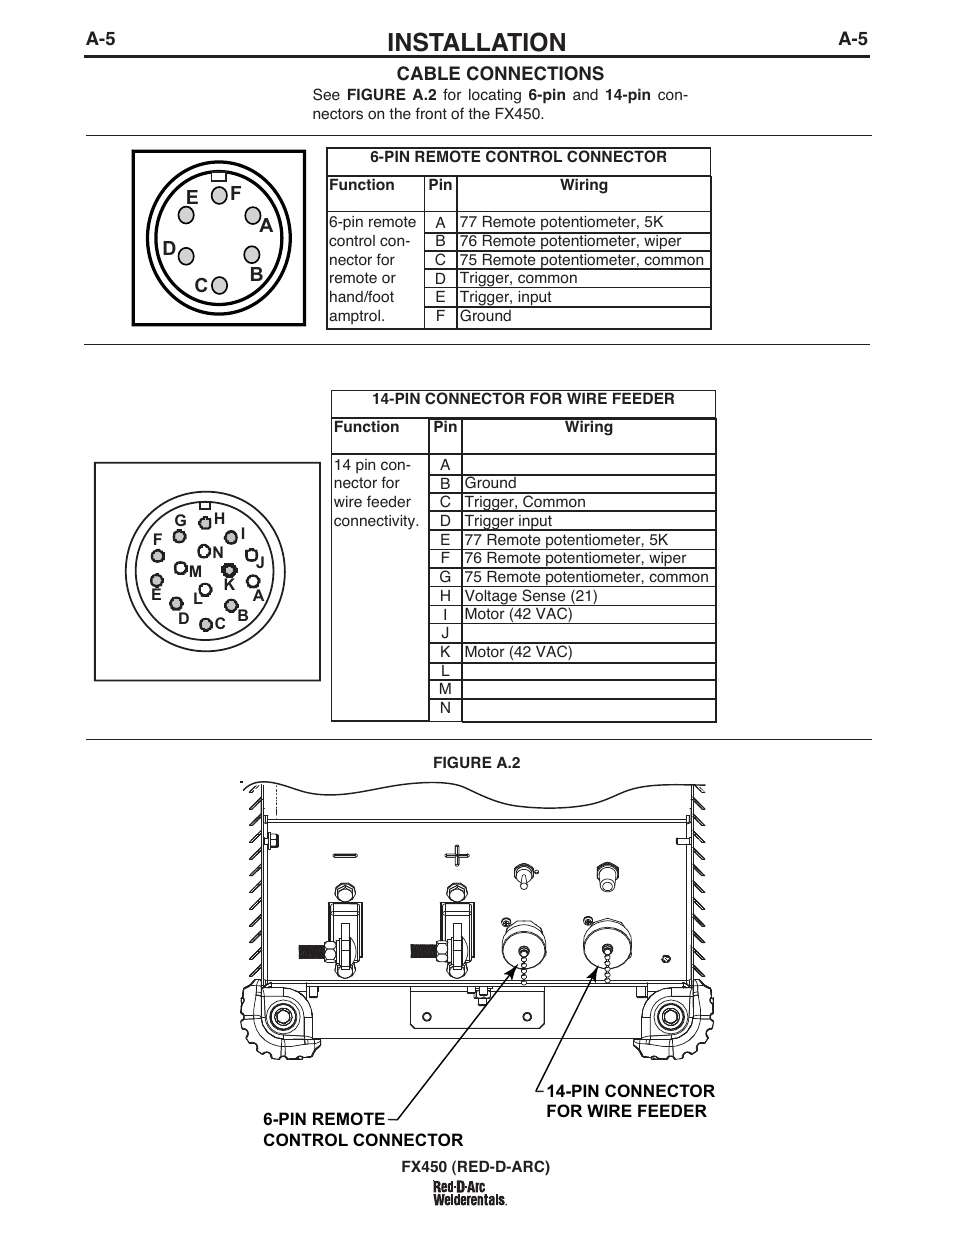 Installation | Lincoln Electric IM10094 RED-D-ARC FX450 User Manual on lincoln ls relay diagram, lincoln starting problems, lincoln parts diagrams, lincoln ls wire harness diagram, lincoln continental horn schematics and diagram, 92 lincoln air suspension diagrams, lincoln transmission diagrams, lincoln heater core replacement, lincoln front suspension, 2000 lincoln ls diagrams, lincoln brakes,